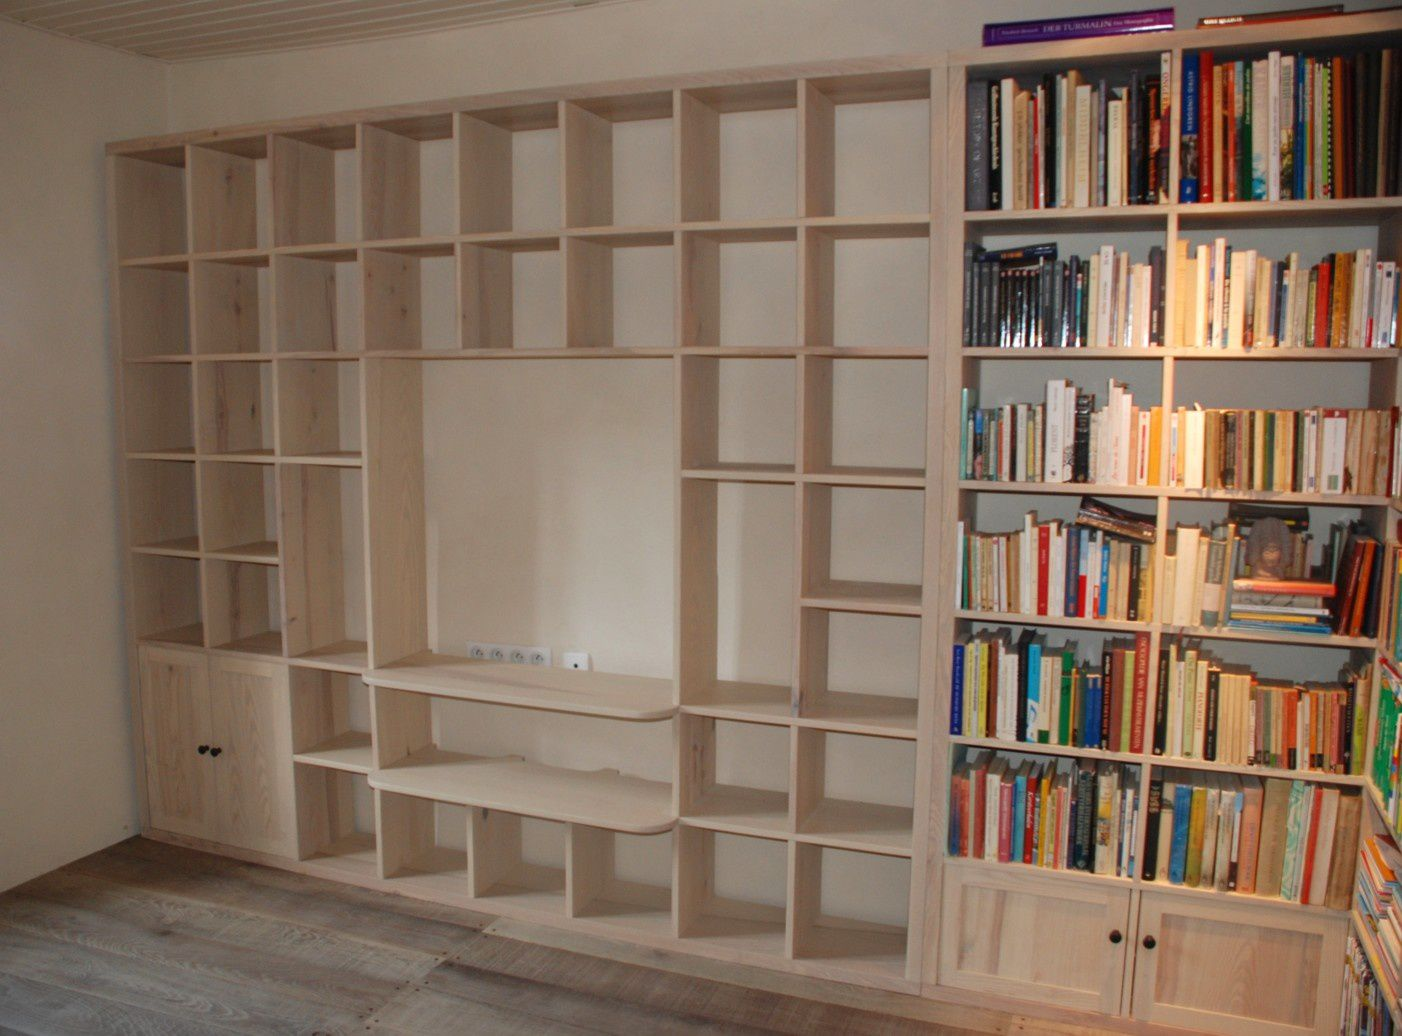 Biblioth que contemporaine tv hifi la suite atelier pourquoi pas mobili - Bibliotheque murale contemporaine ...